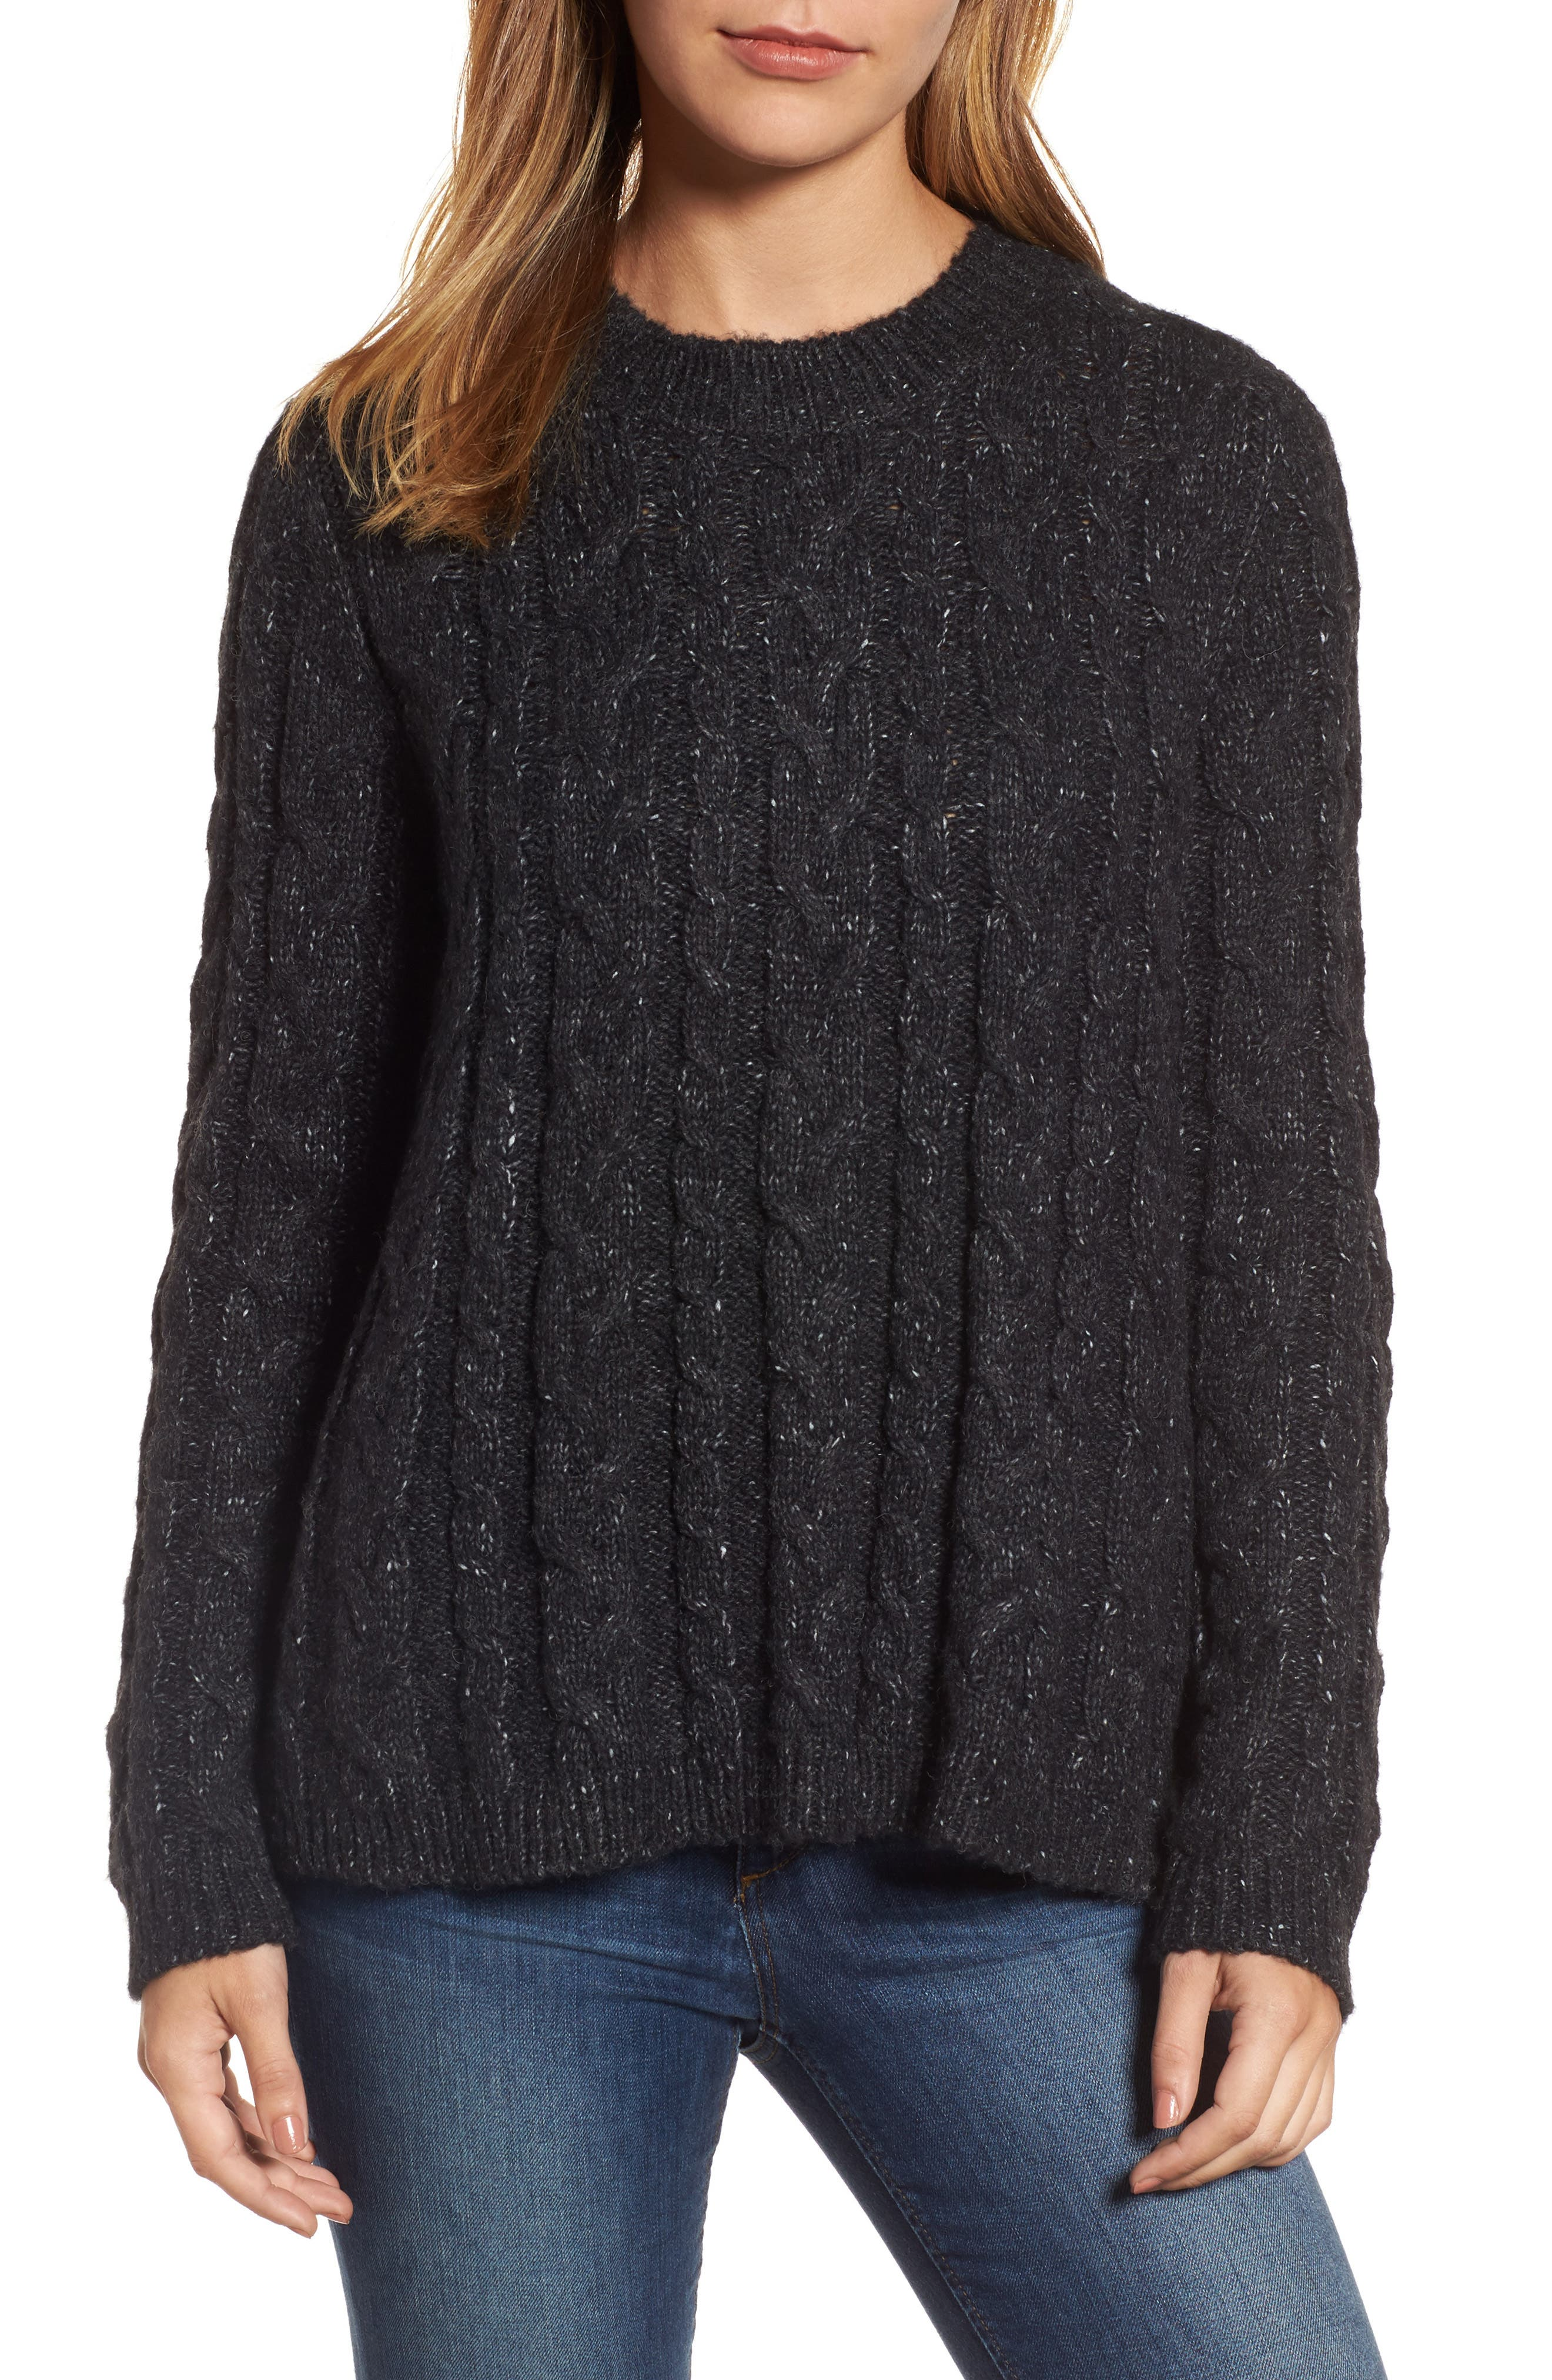 Main Image - Press Trapeze Fit Cable Knit Sweater